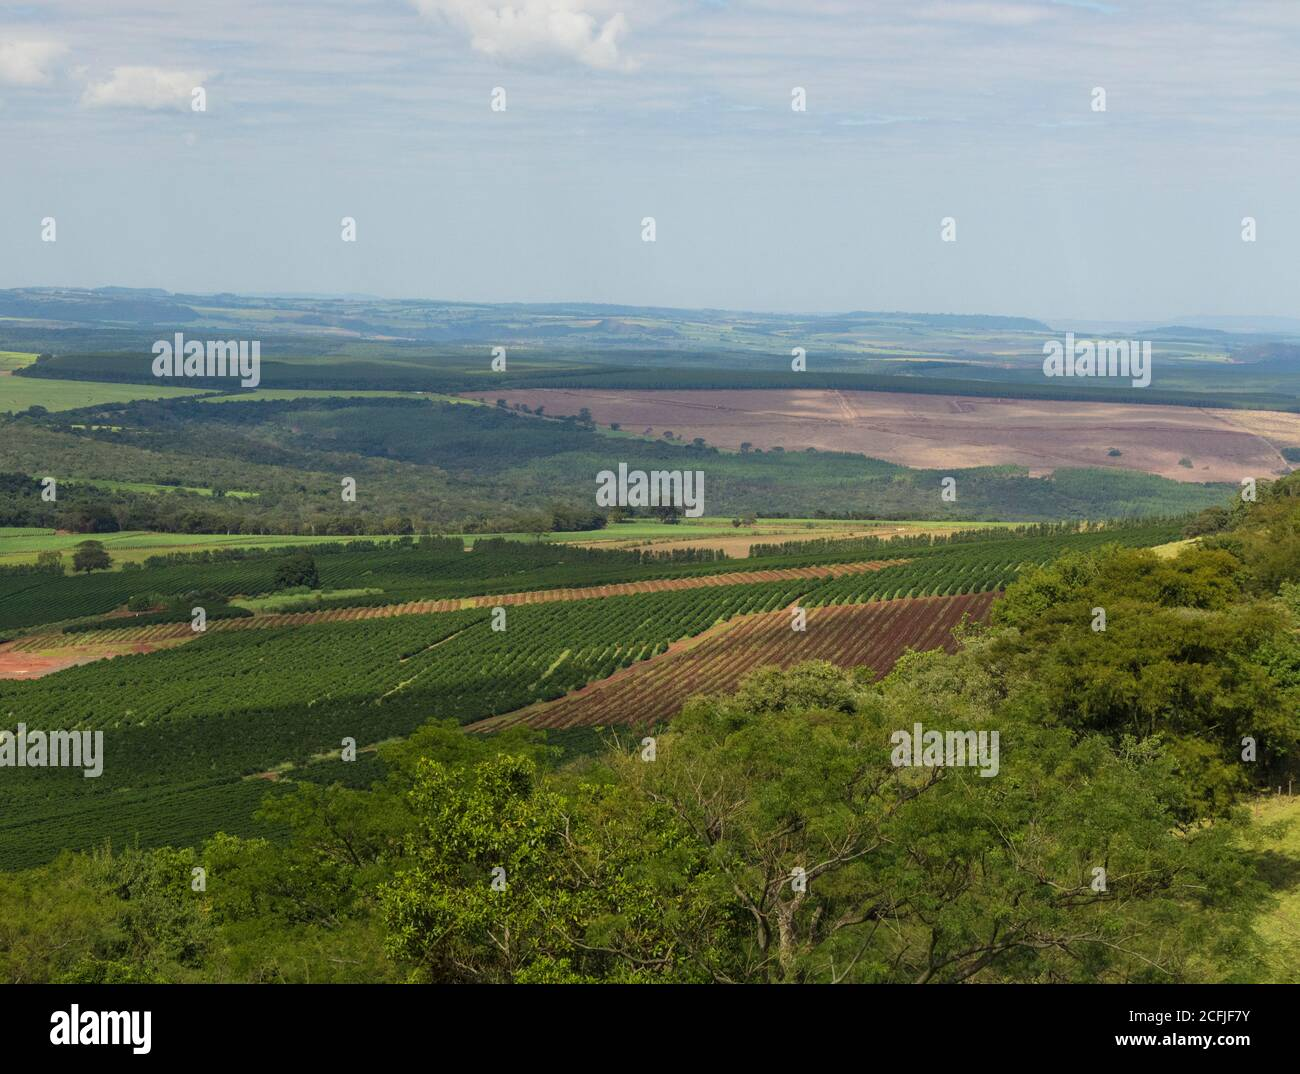 Coffee plantation farm in the mountains landscape on a claudy day Stock Photo